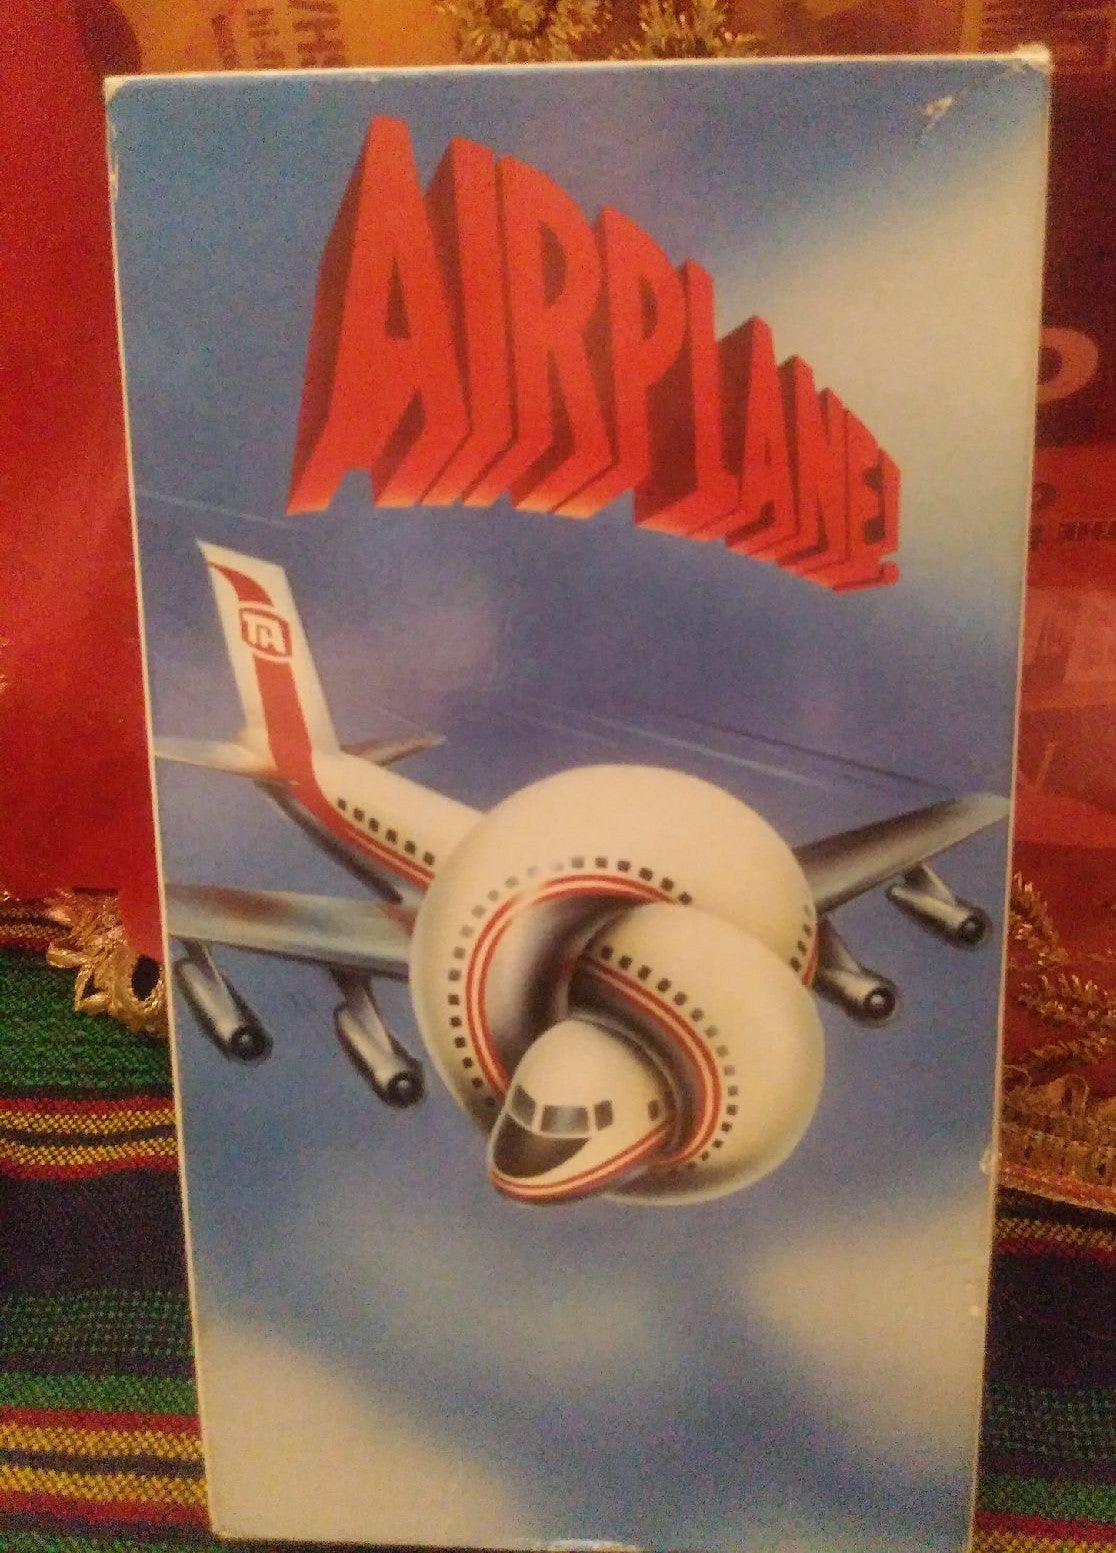 AIRPLANE! - VHS movie Cult Classic Comed